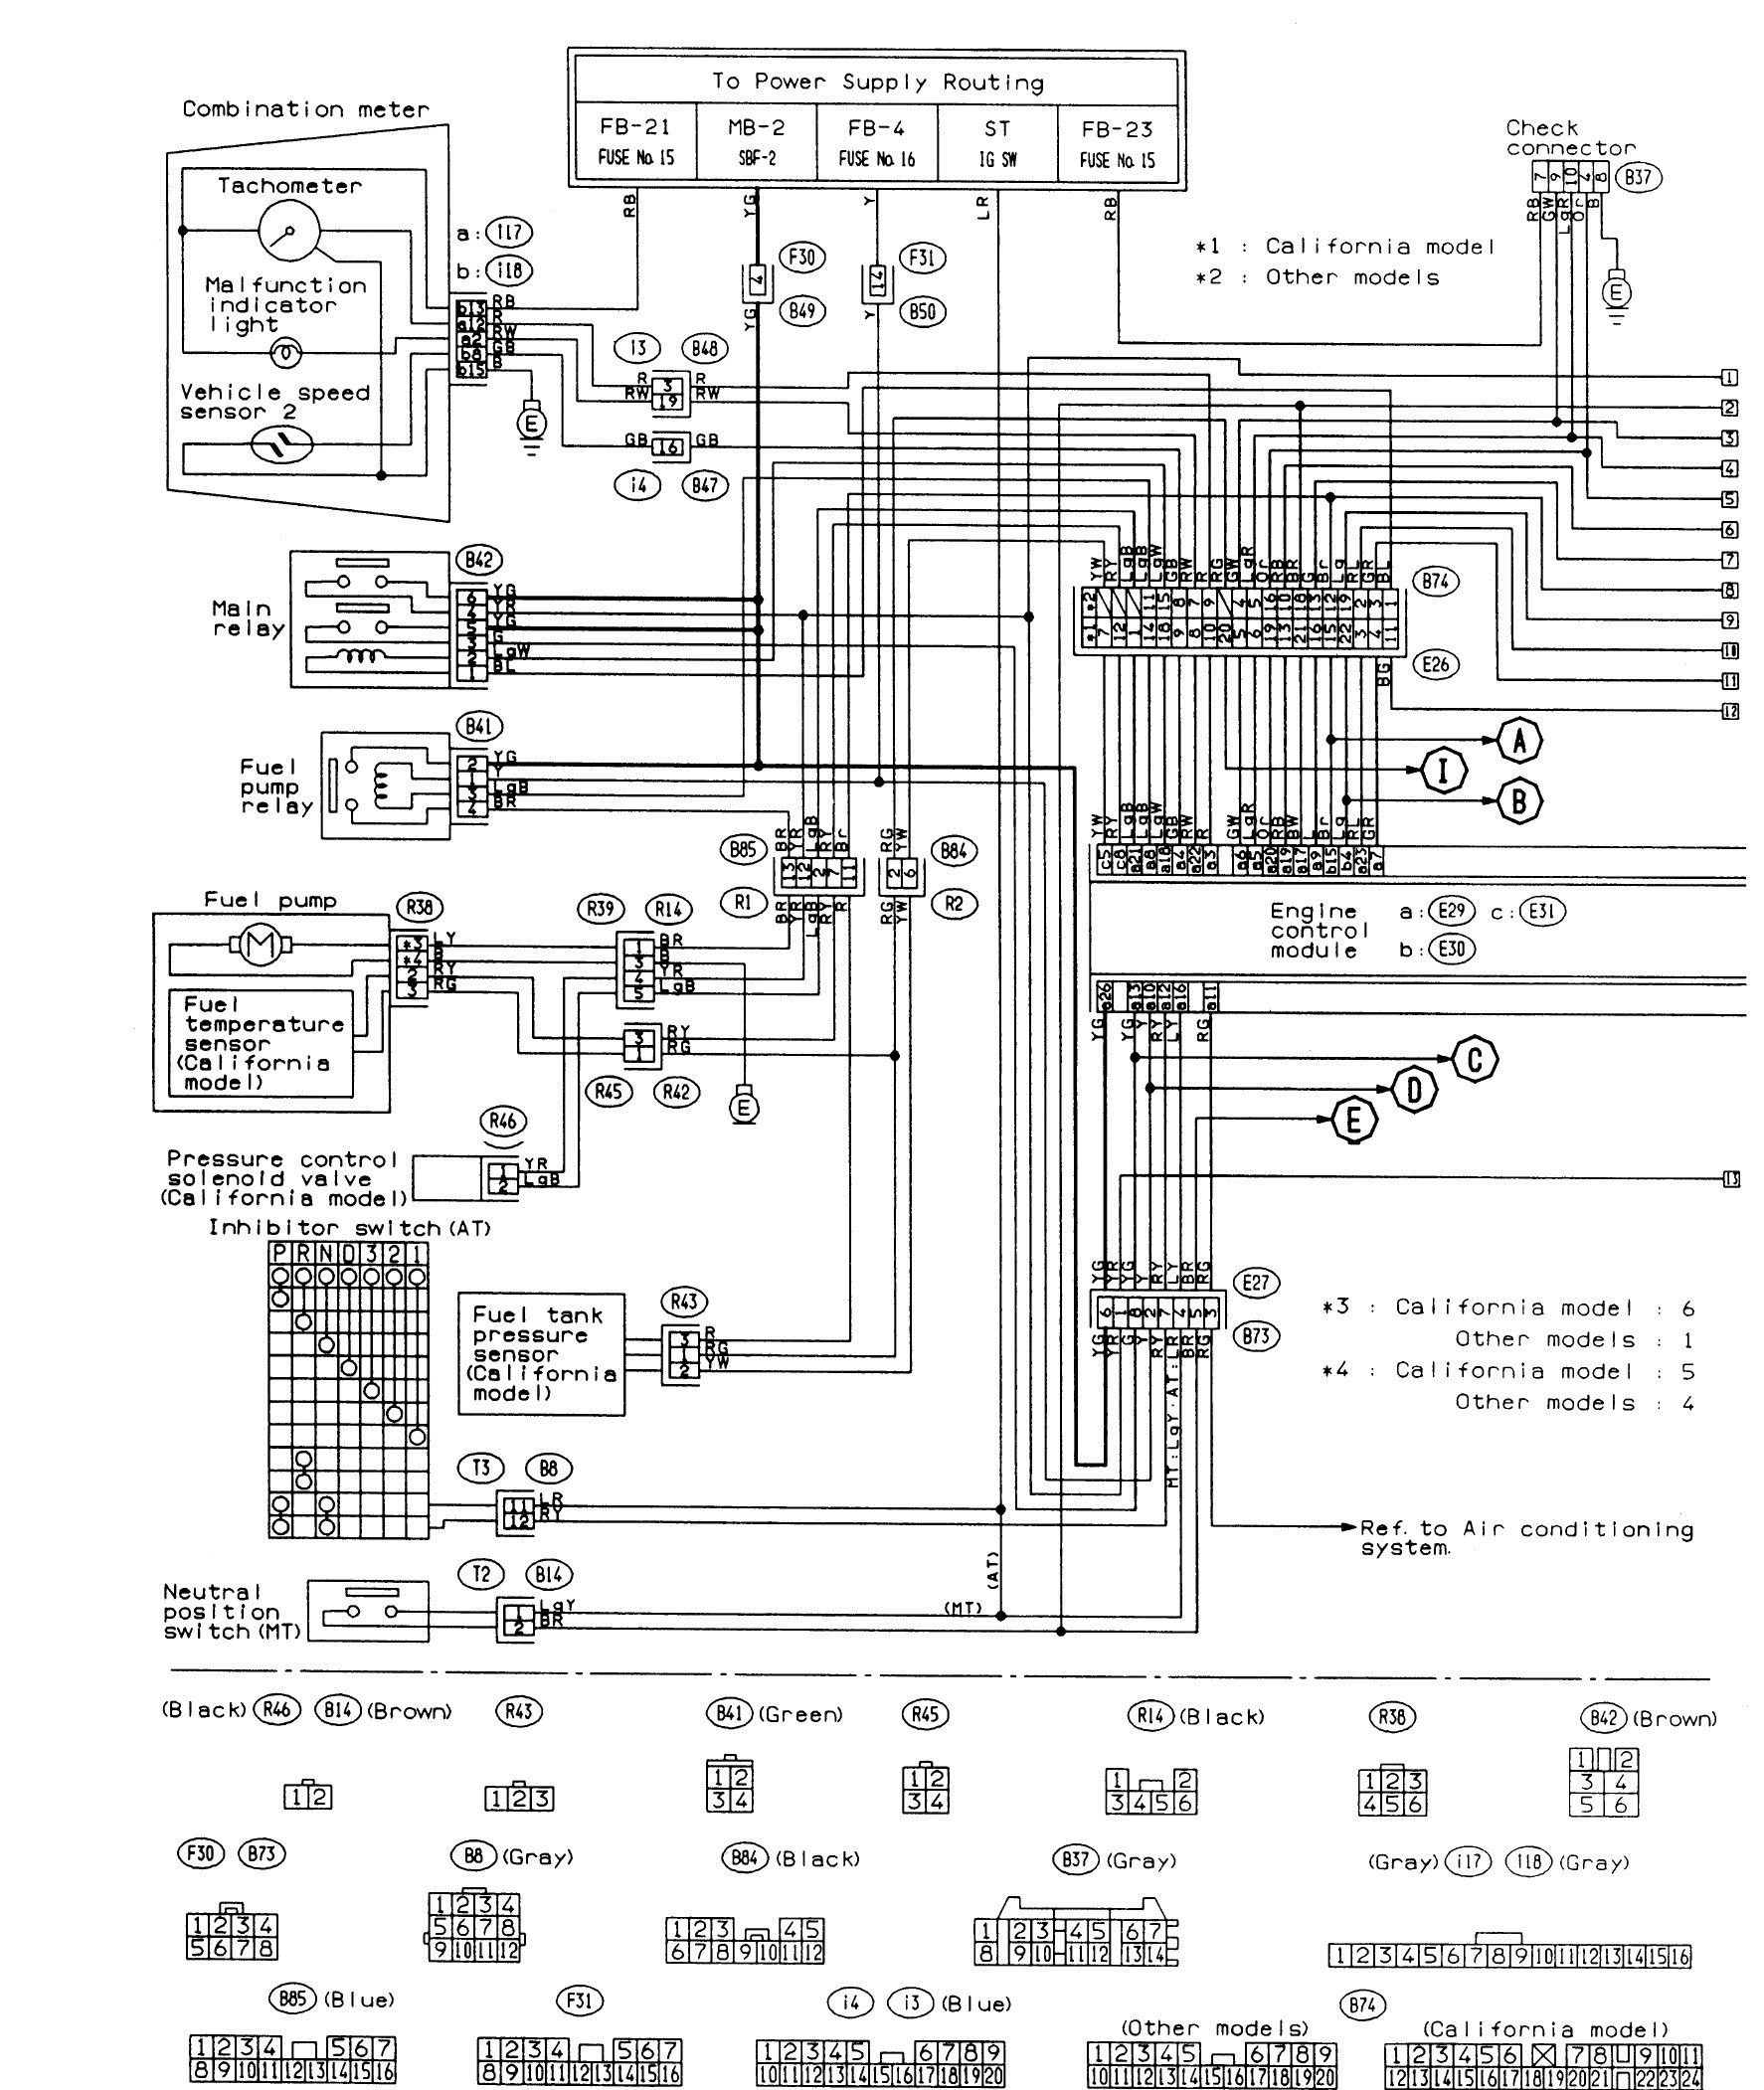 Wiring Diagram For A 2004 Pontiac Aztek Free Download Wiring Diagram